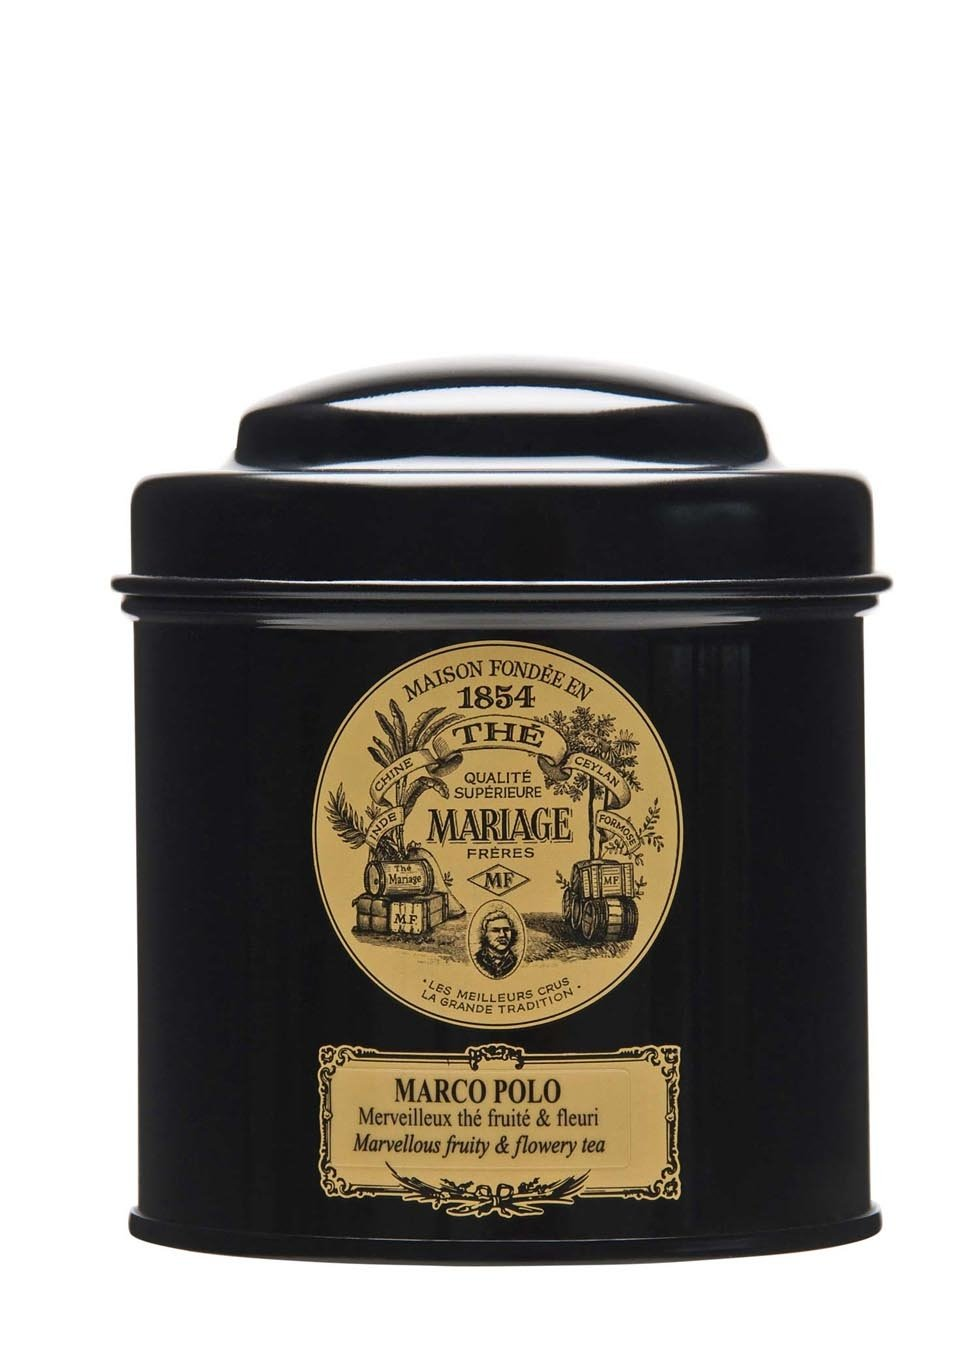 MARIAGE FRERES. Marco Polo Tea, 100g Loose Tea, in a Tin Caddy (1 Pack) Seller Product Id MR24LS - USA Stock